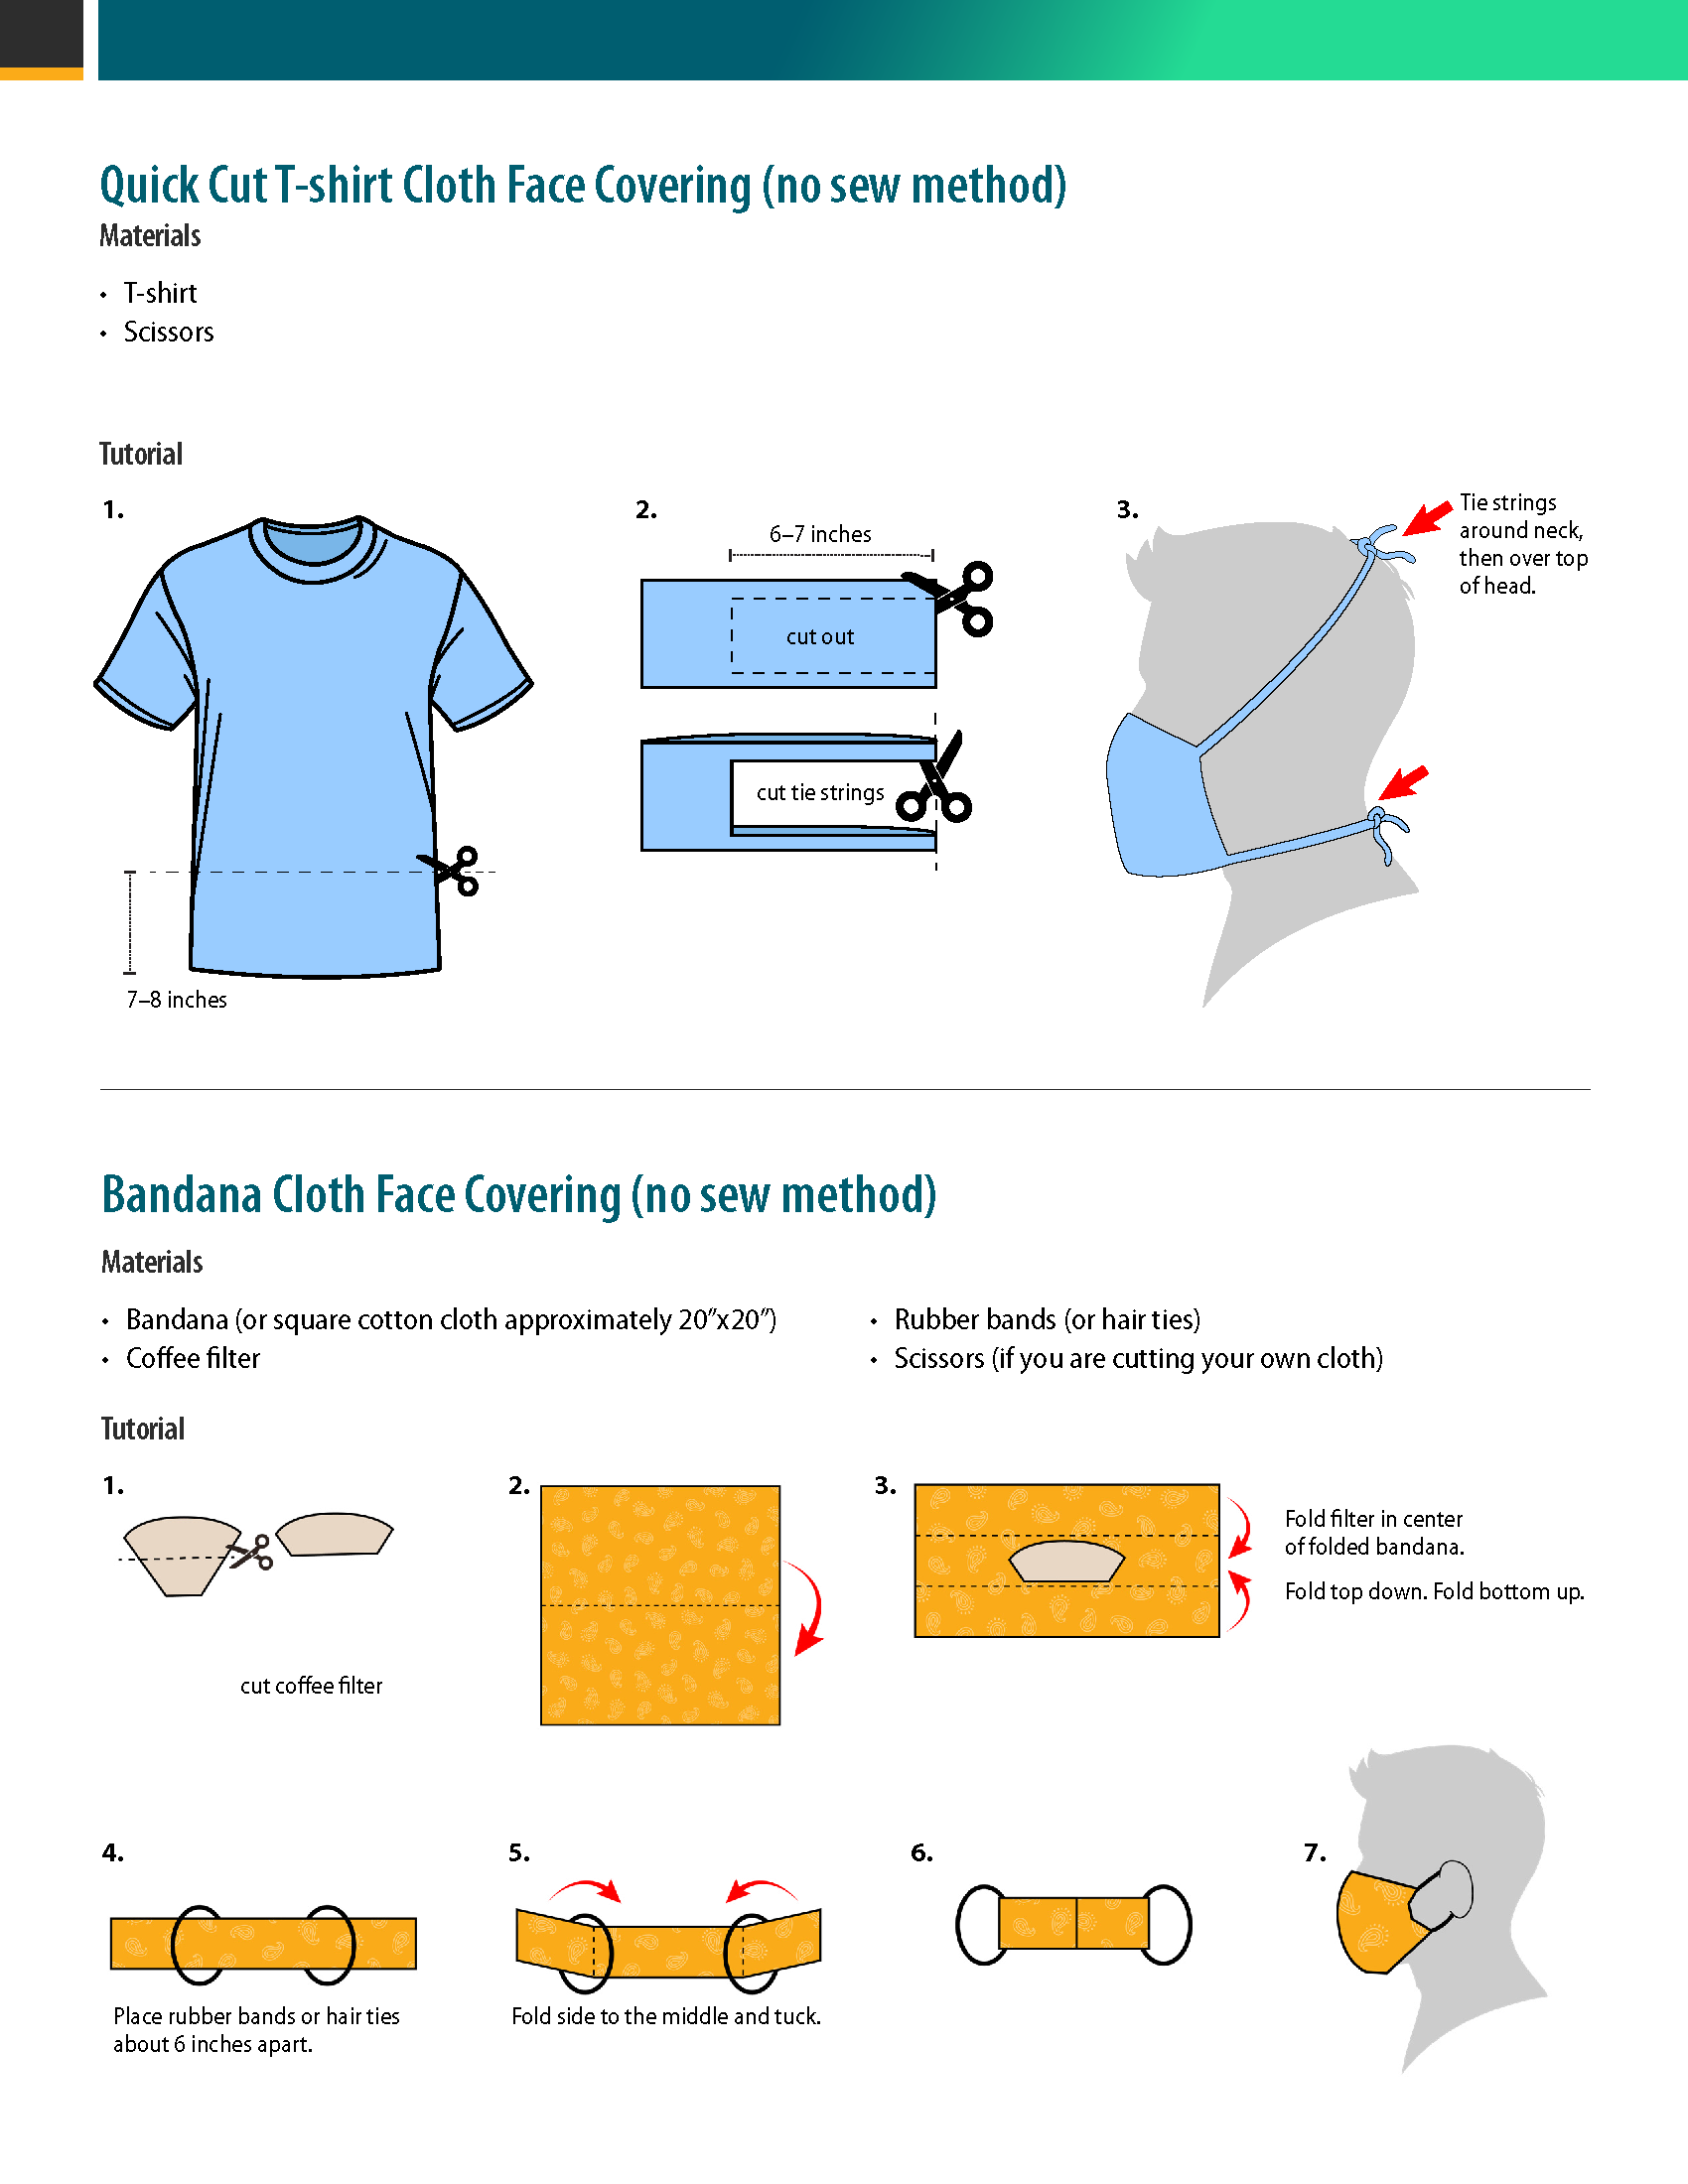 Page 3 of the CDC Cloth Face Coverings guidelines.